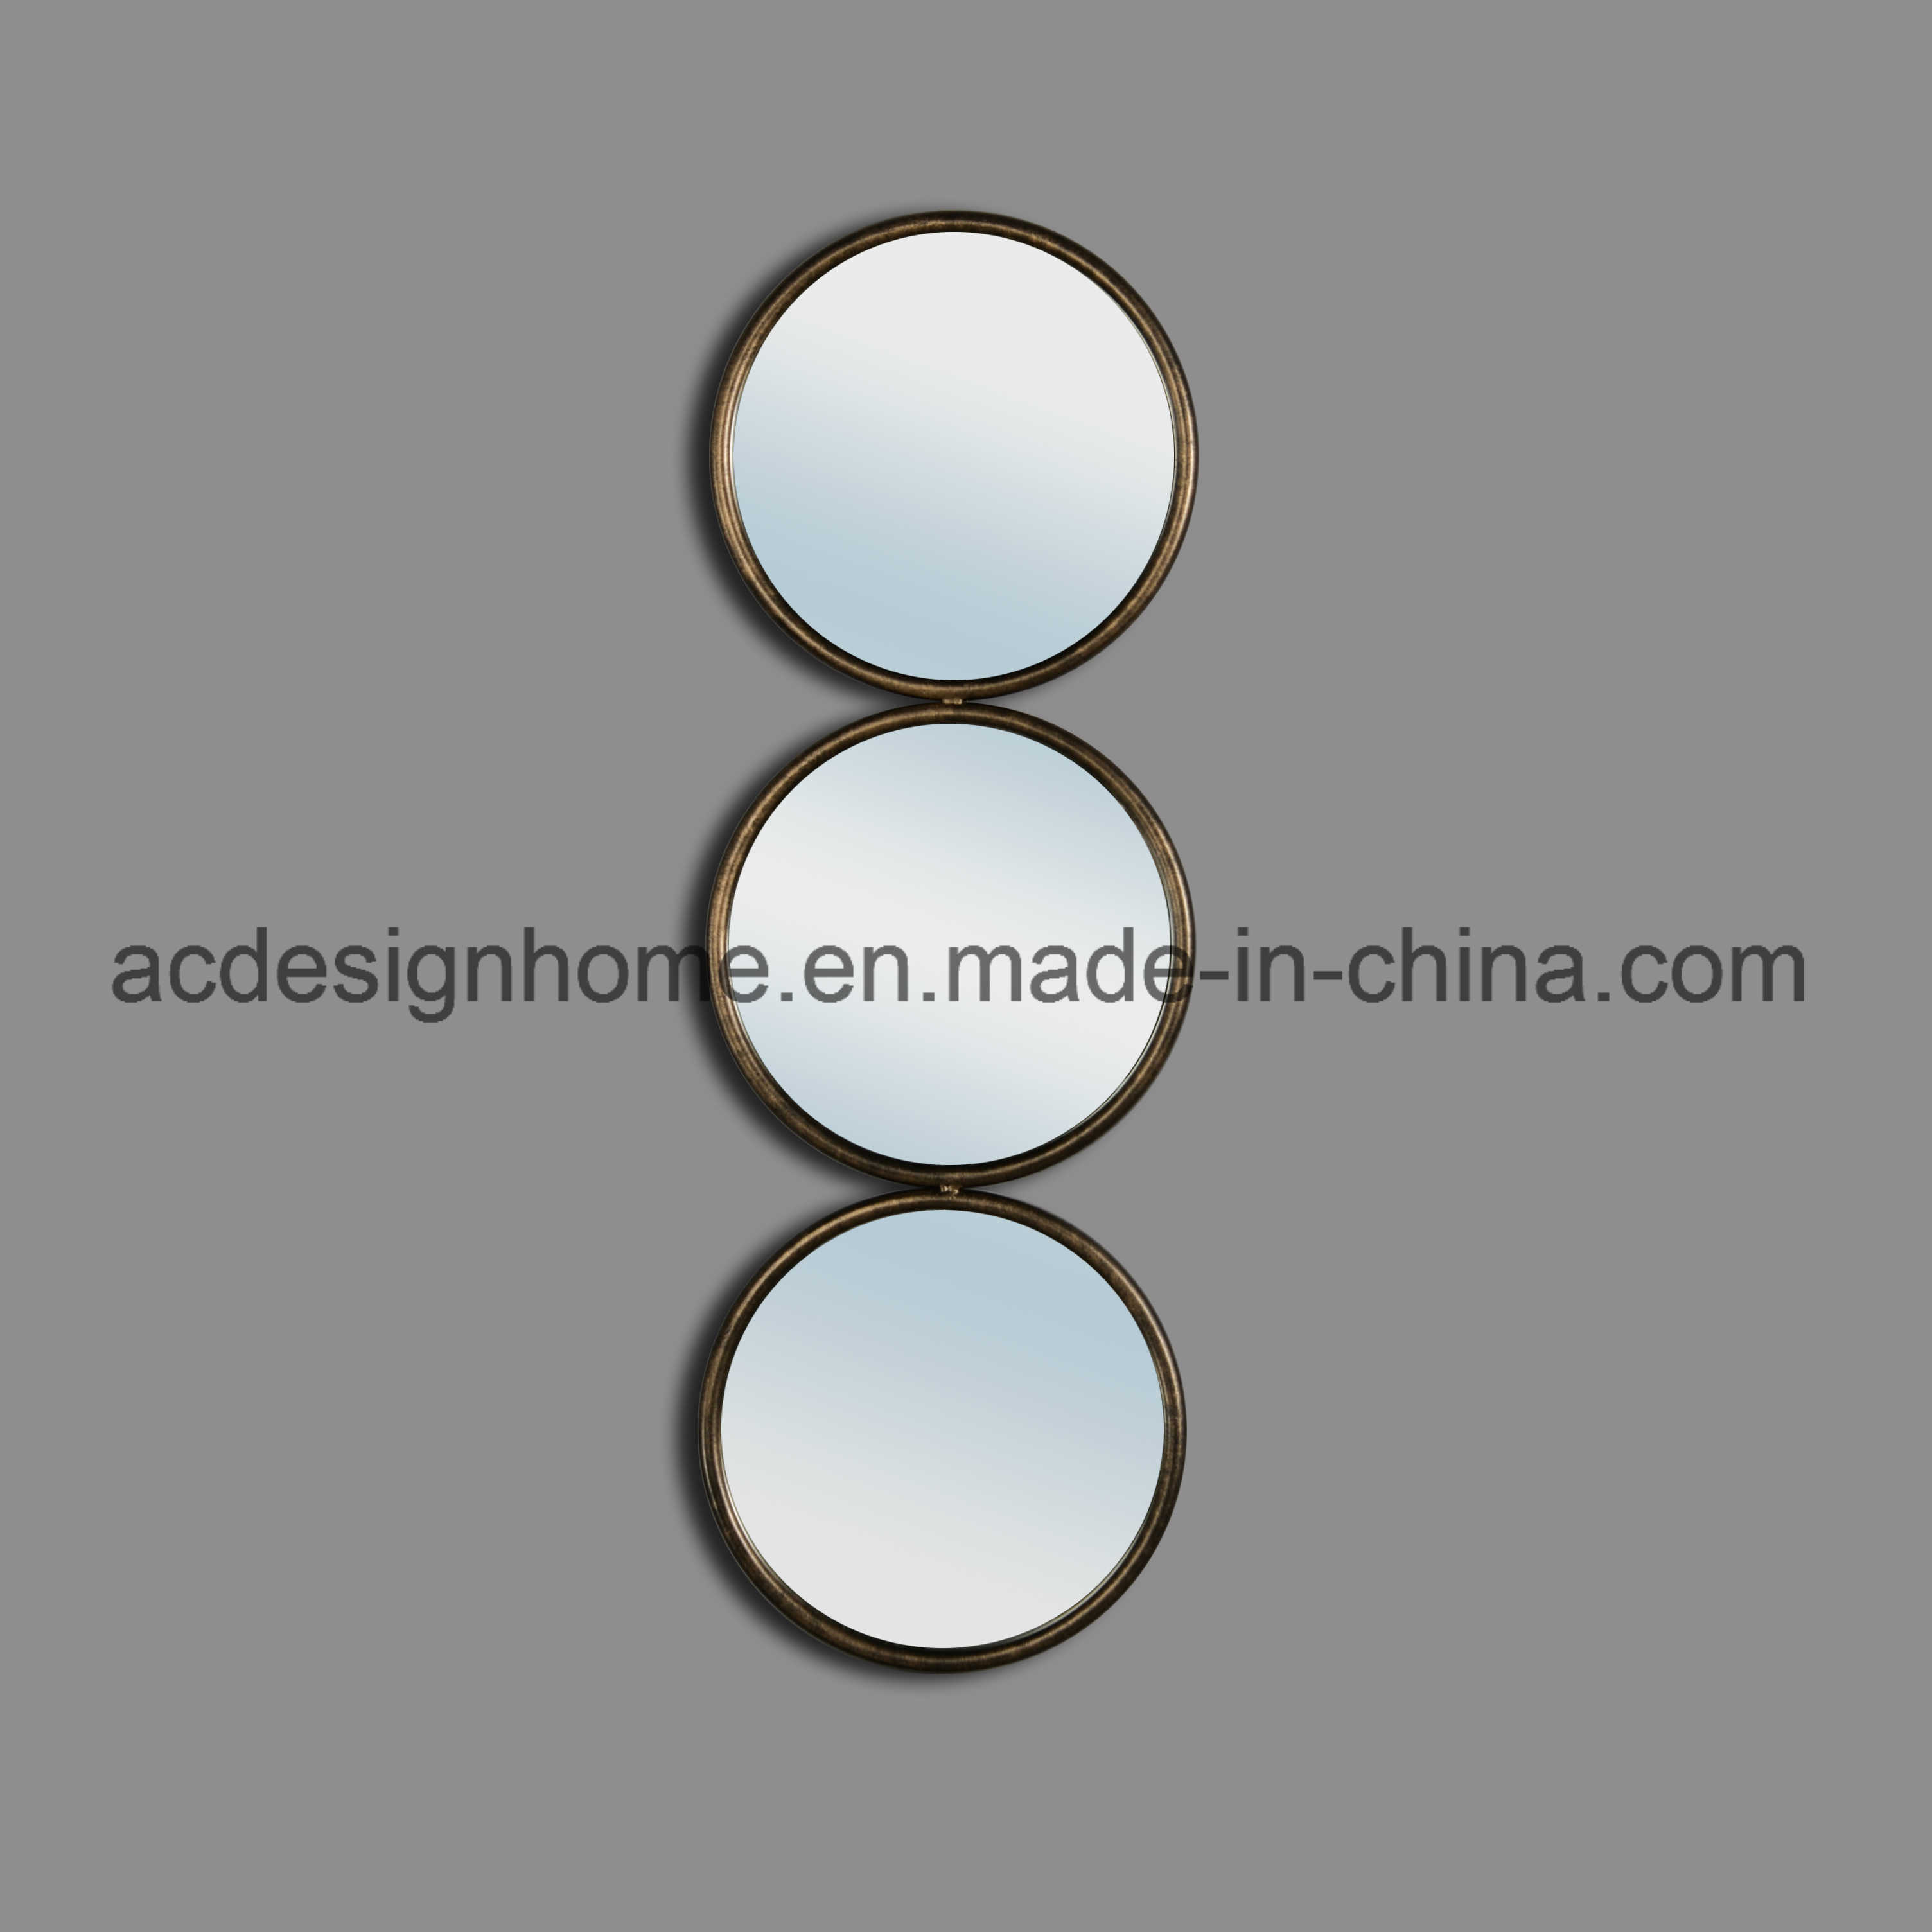 [Hot Item] Simple Modern Elegant Best Price High Quality Interior  Decorative Vertical Three Round Mirror As One Hanging Wall Mirrors With Regard To Vertical Round Wall Mirrors (Image 2 of 20)